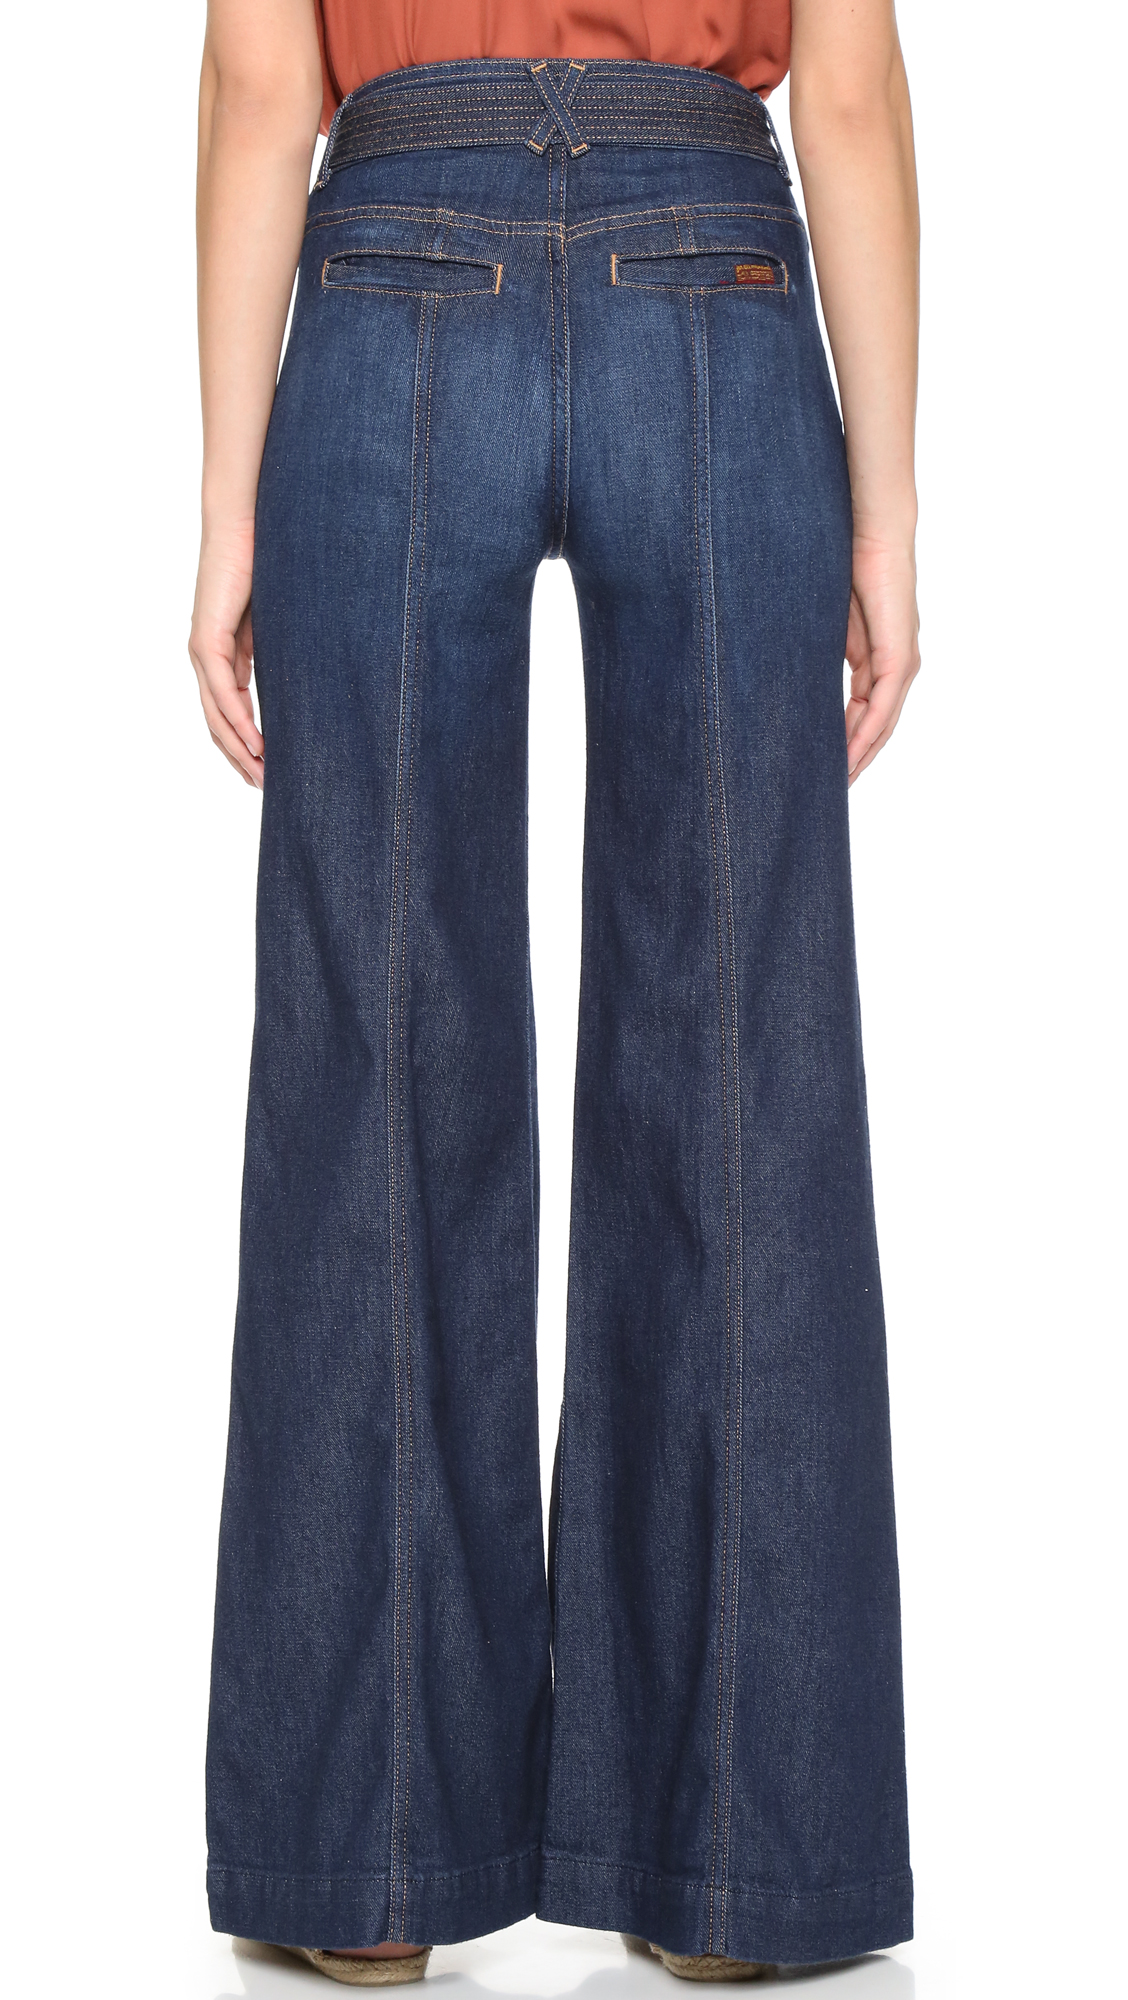 7 For All Mankind The Belted Palazzo Jeans | 15% off first app ...